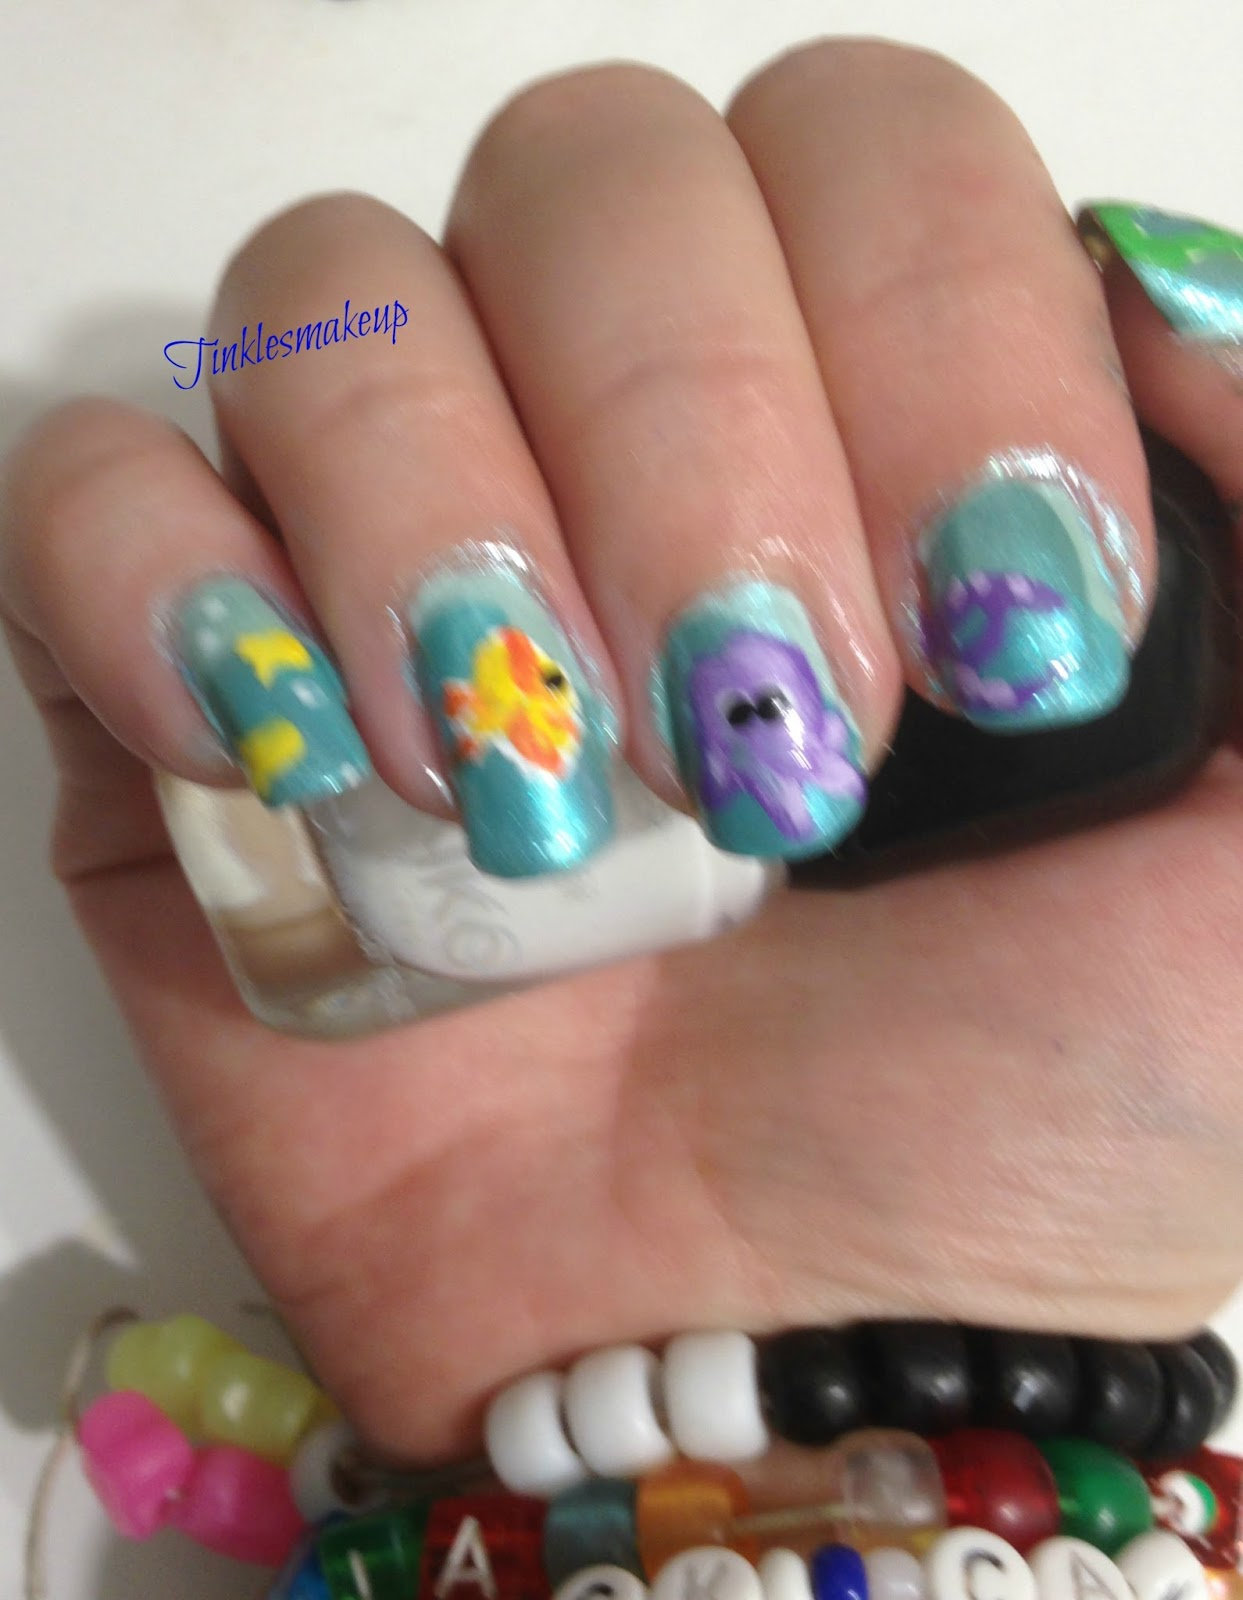 Tinklesmakeup: Under the sea nail art